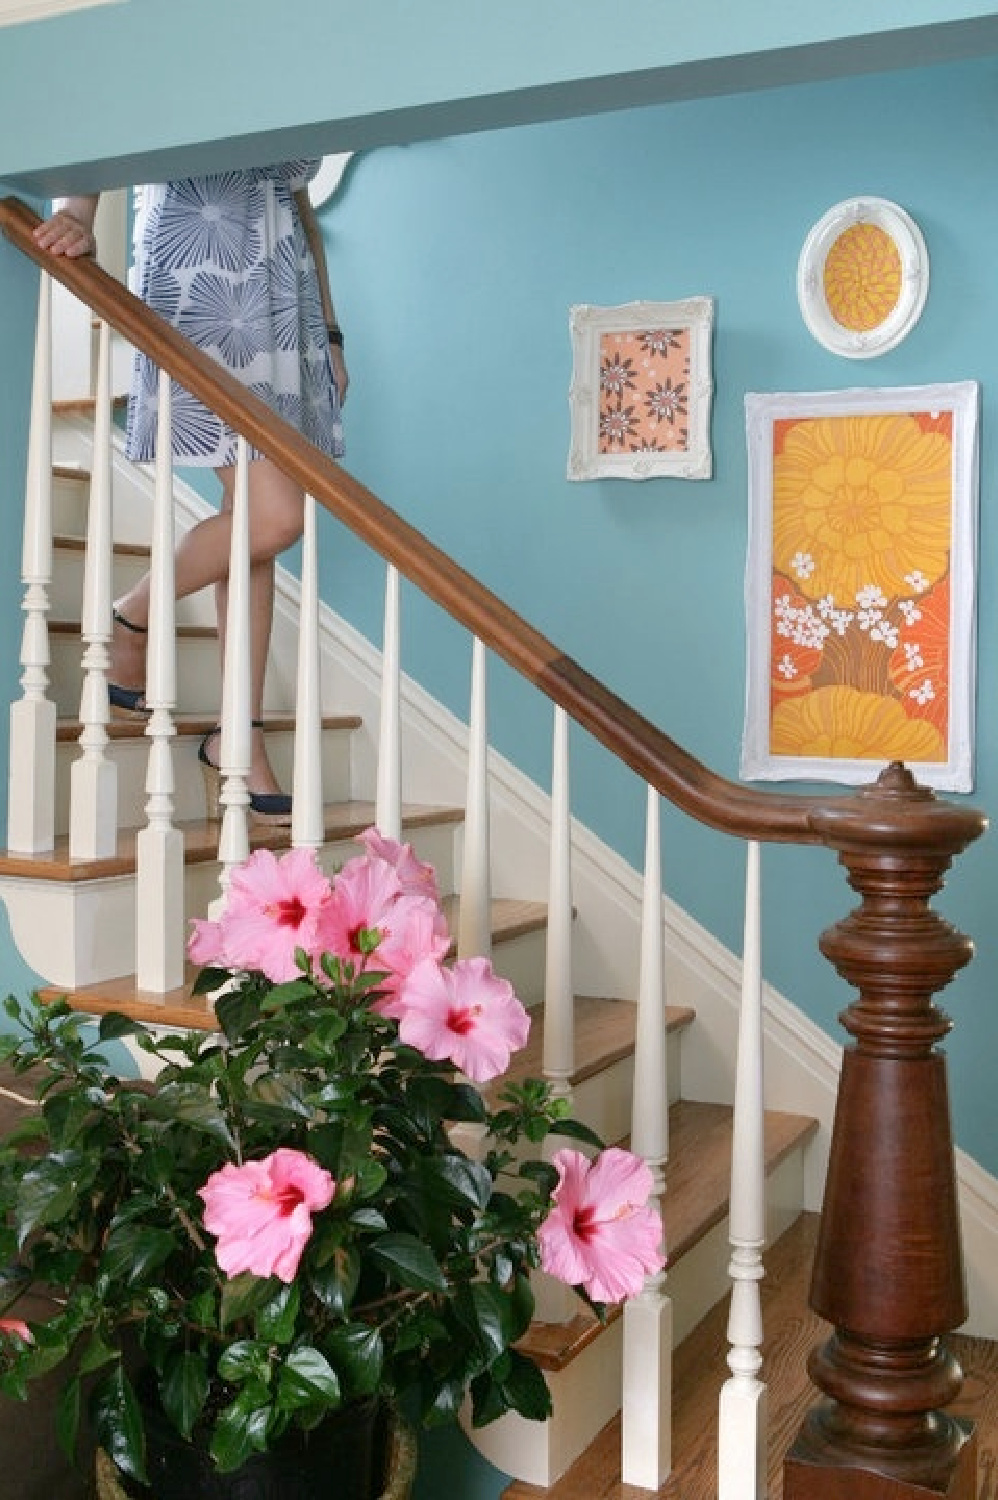 Turquoise beachy wall paired with traditional wood staircase in the beachy boho groovy living room of Jenny Sweeney.